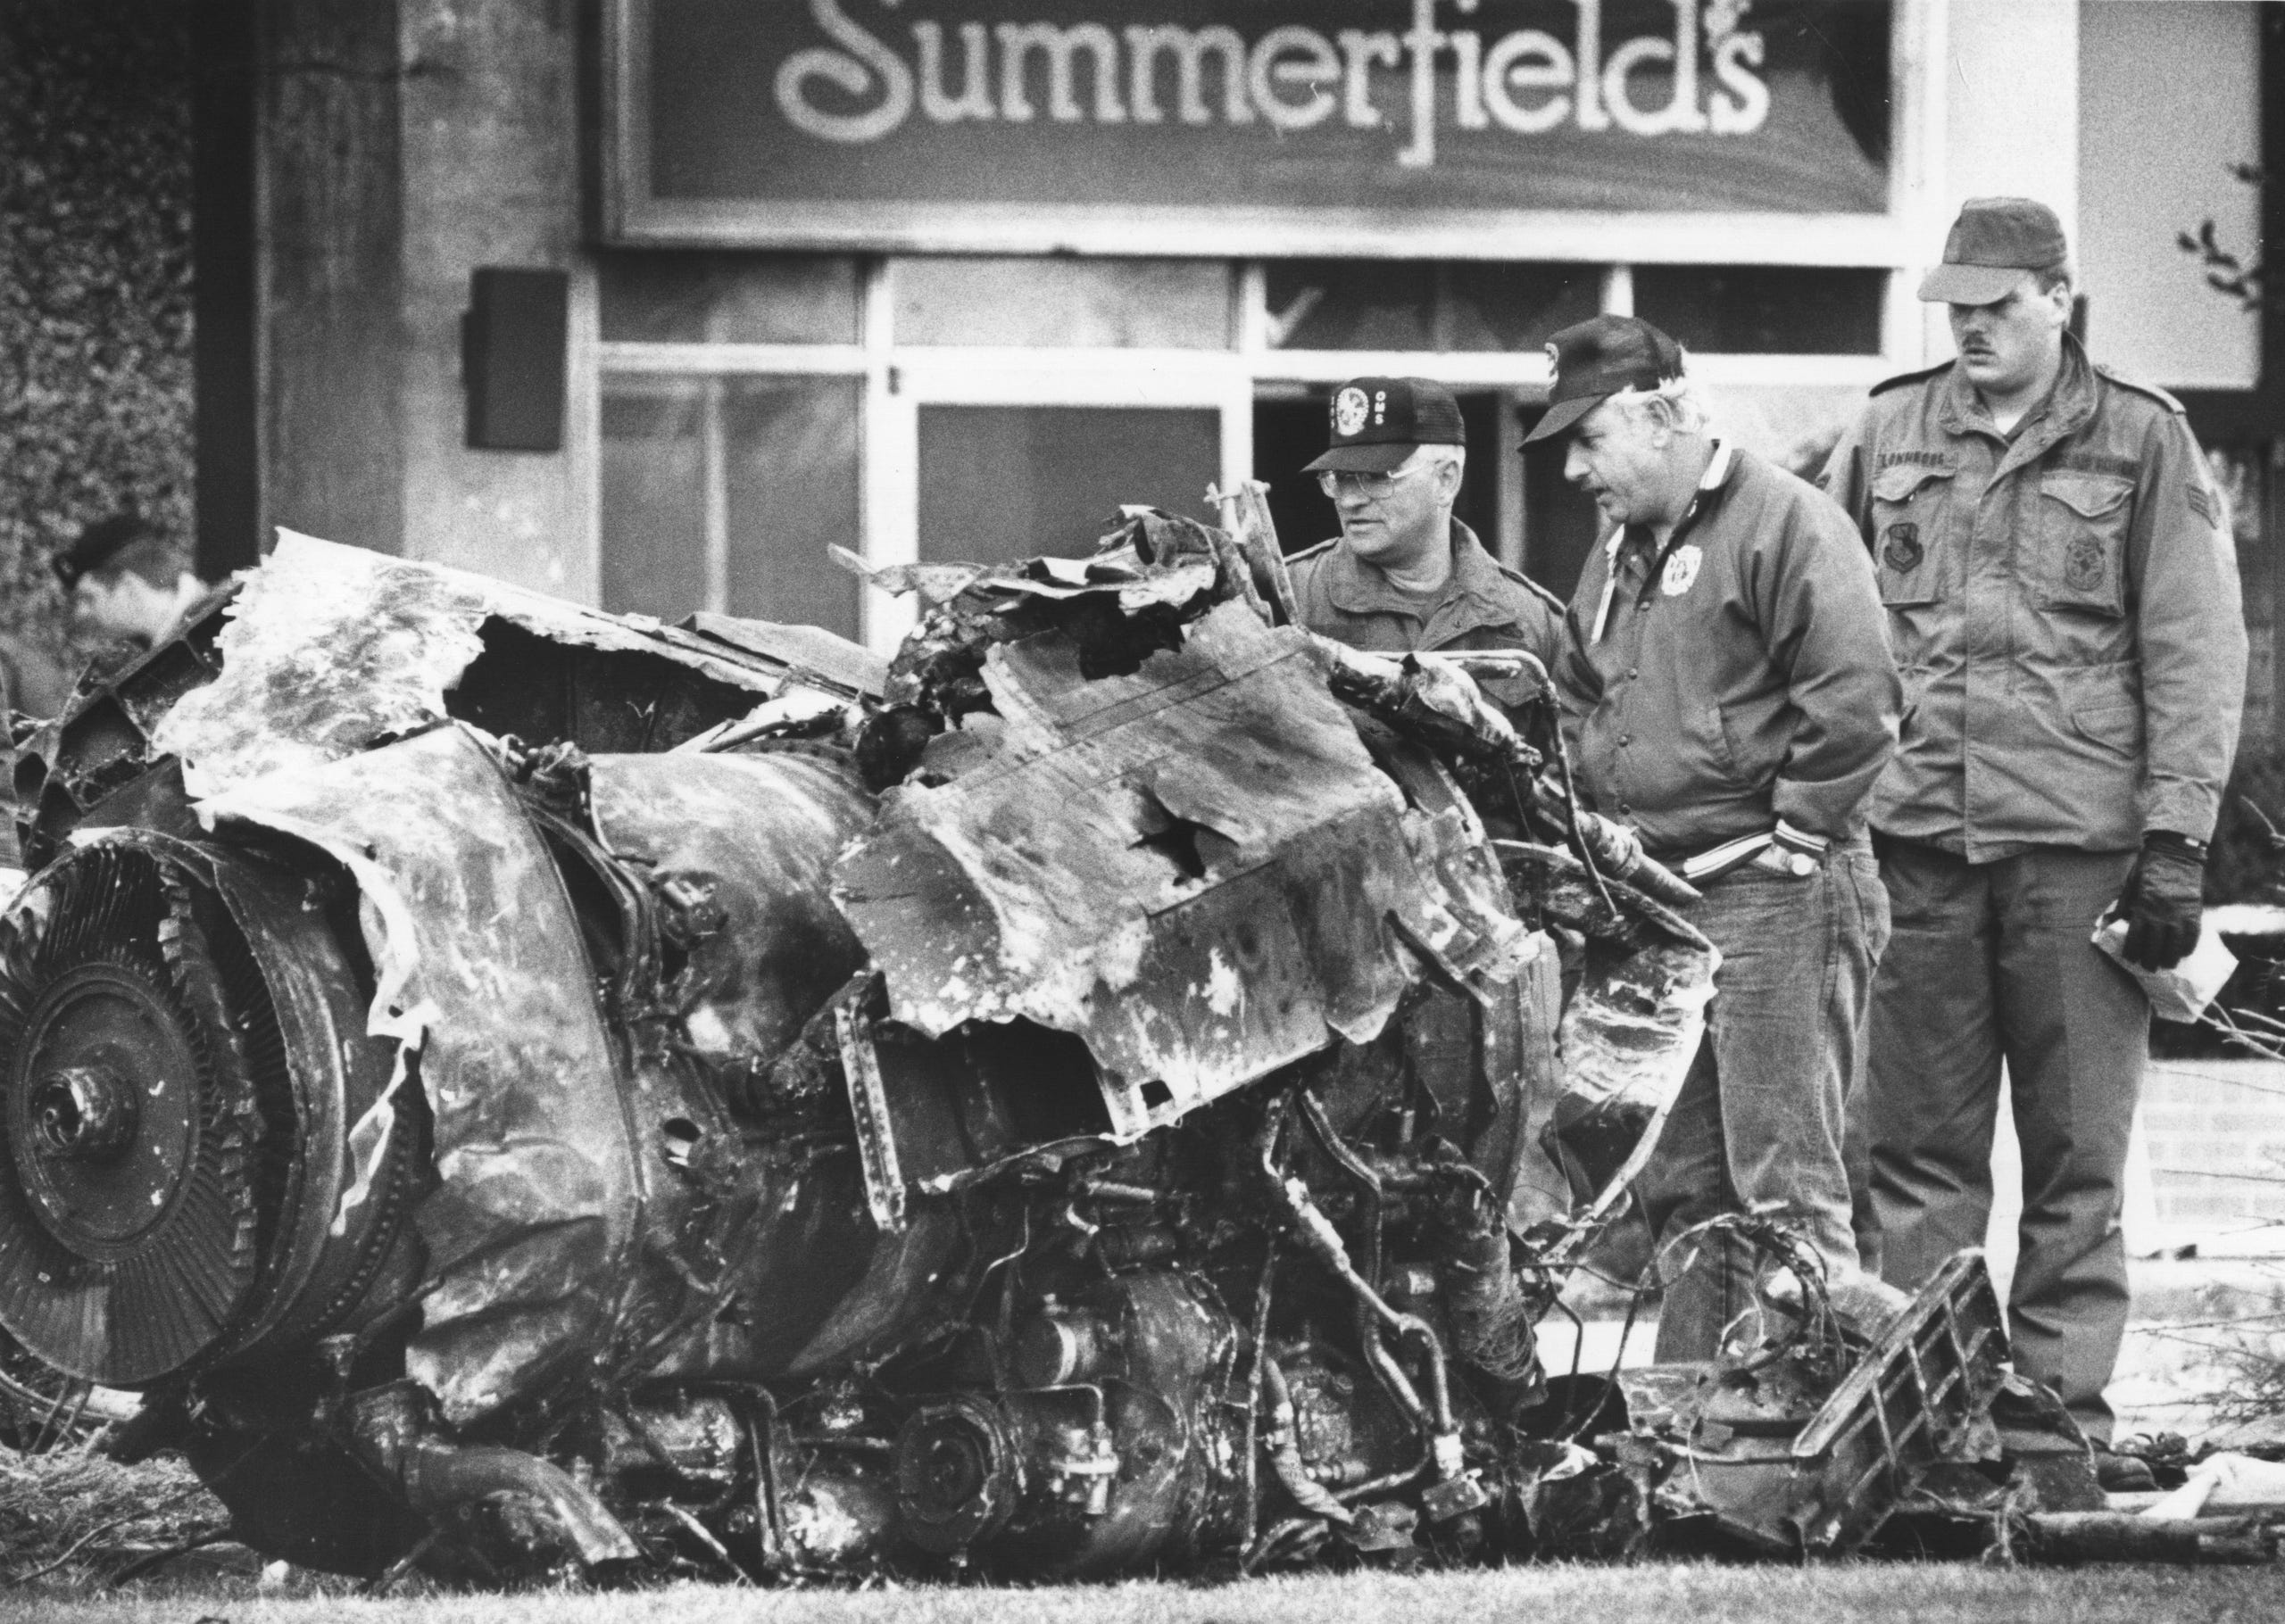 Aviation experts study the remains of a military jet that crashed into the Ramada Inn near the Indianapolis airport on Oct. 20, 1987.